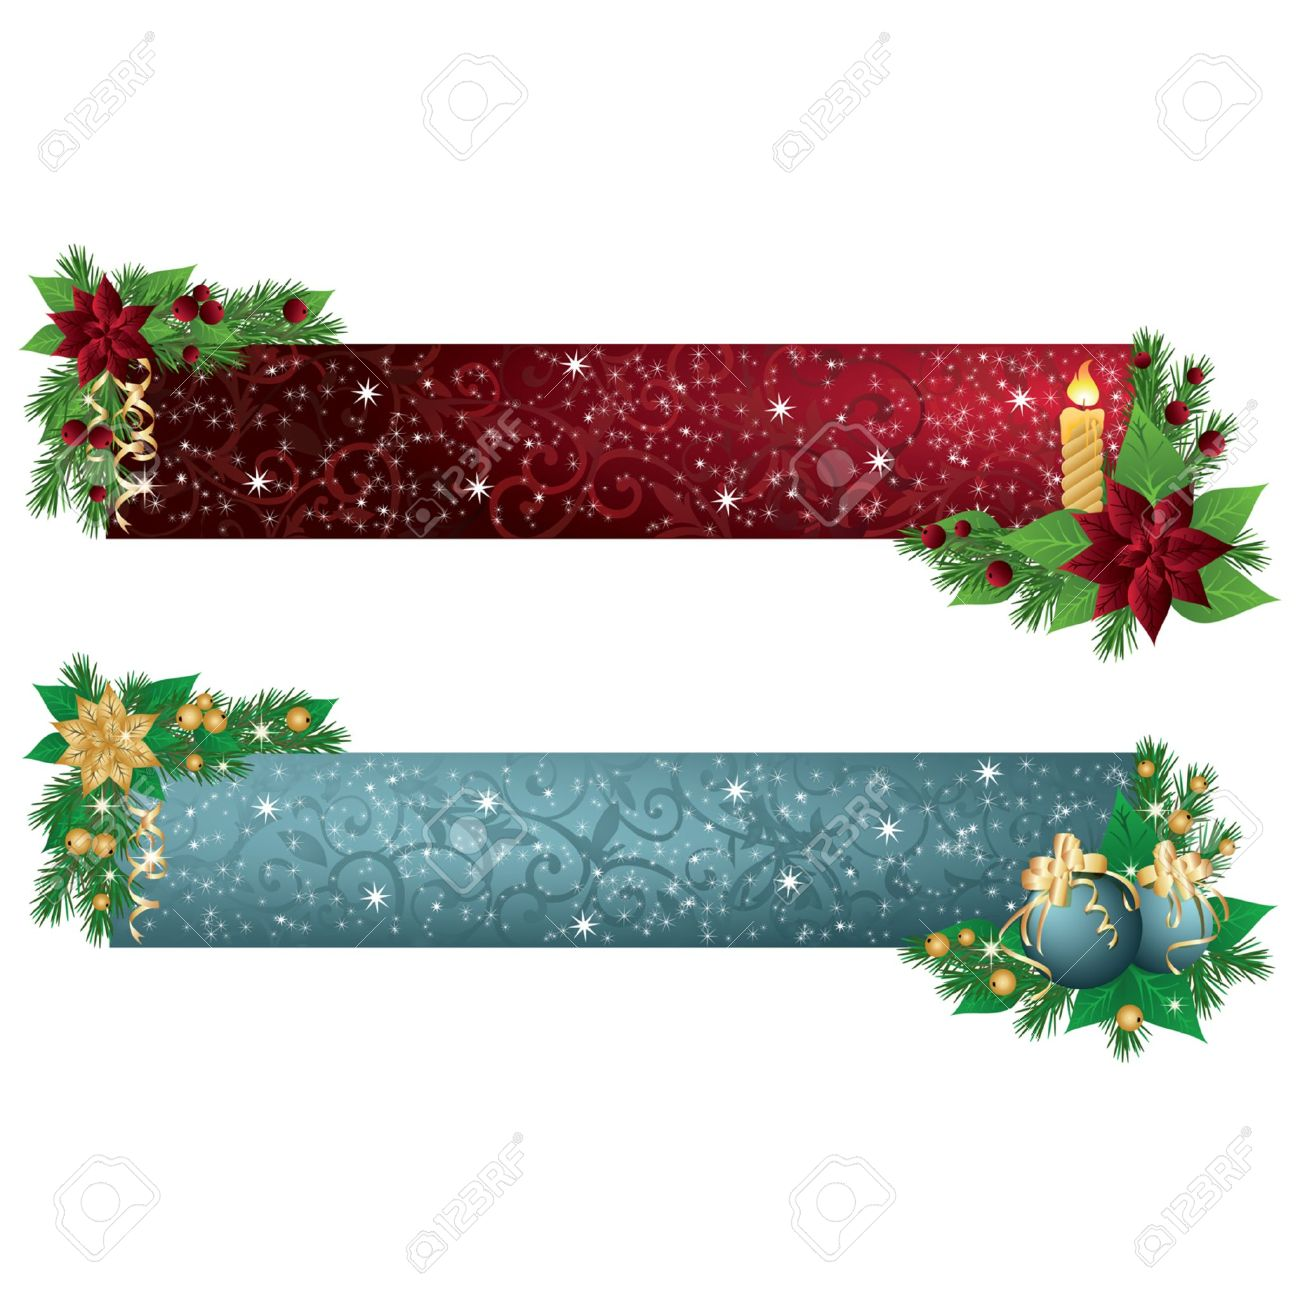 christmas images banners